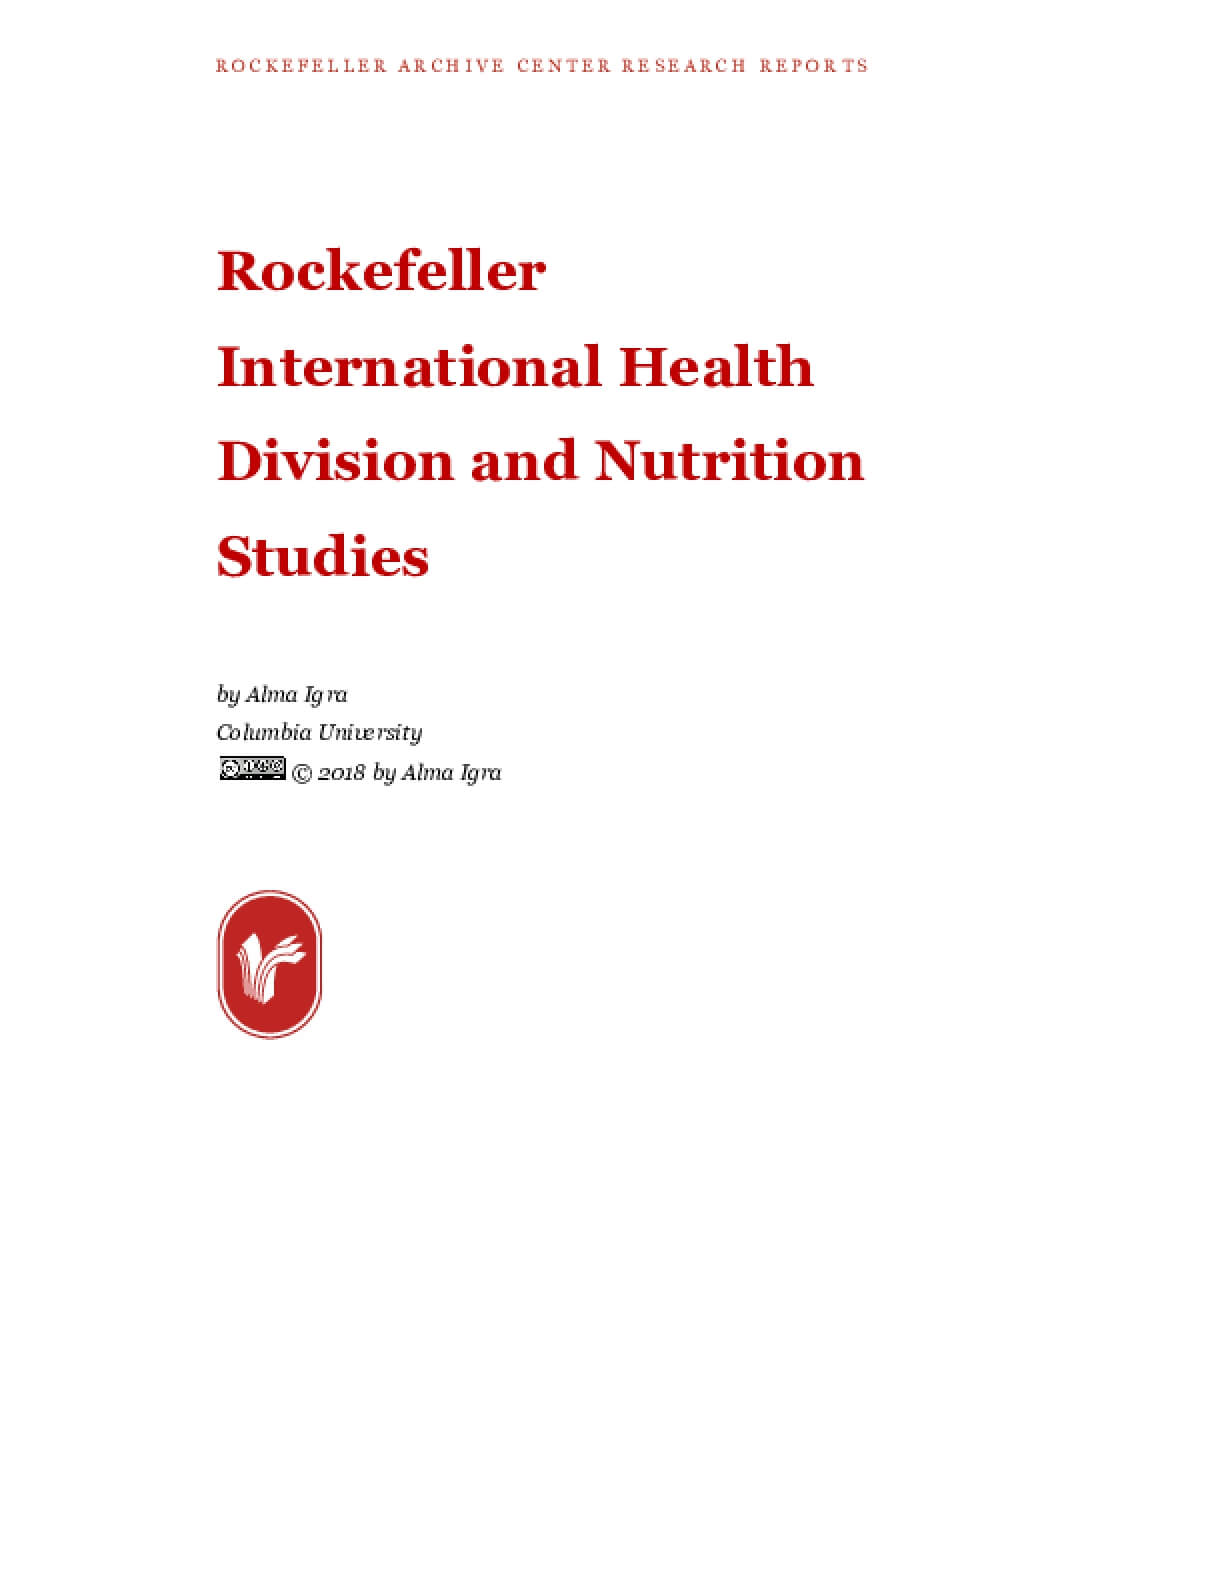 Rockefeller International Health Division and Nutrition Studies